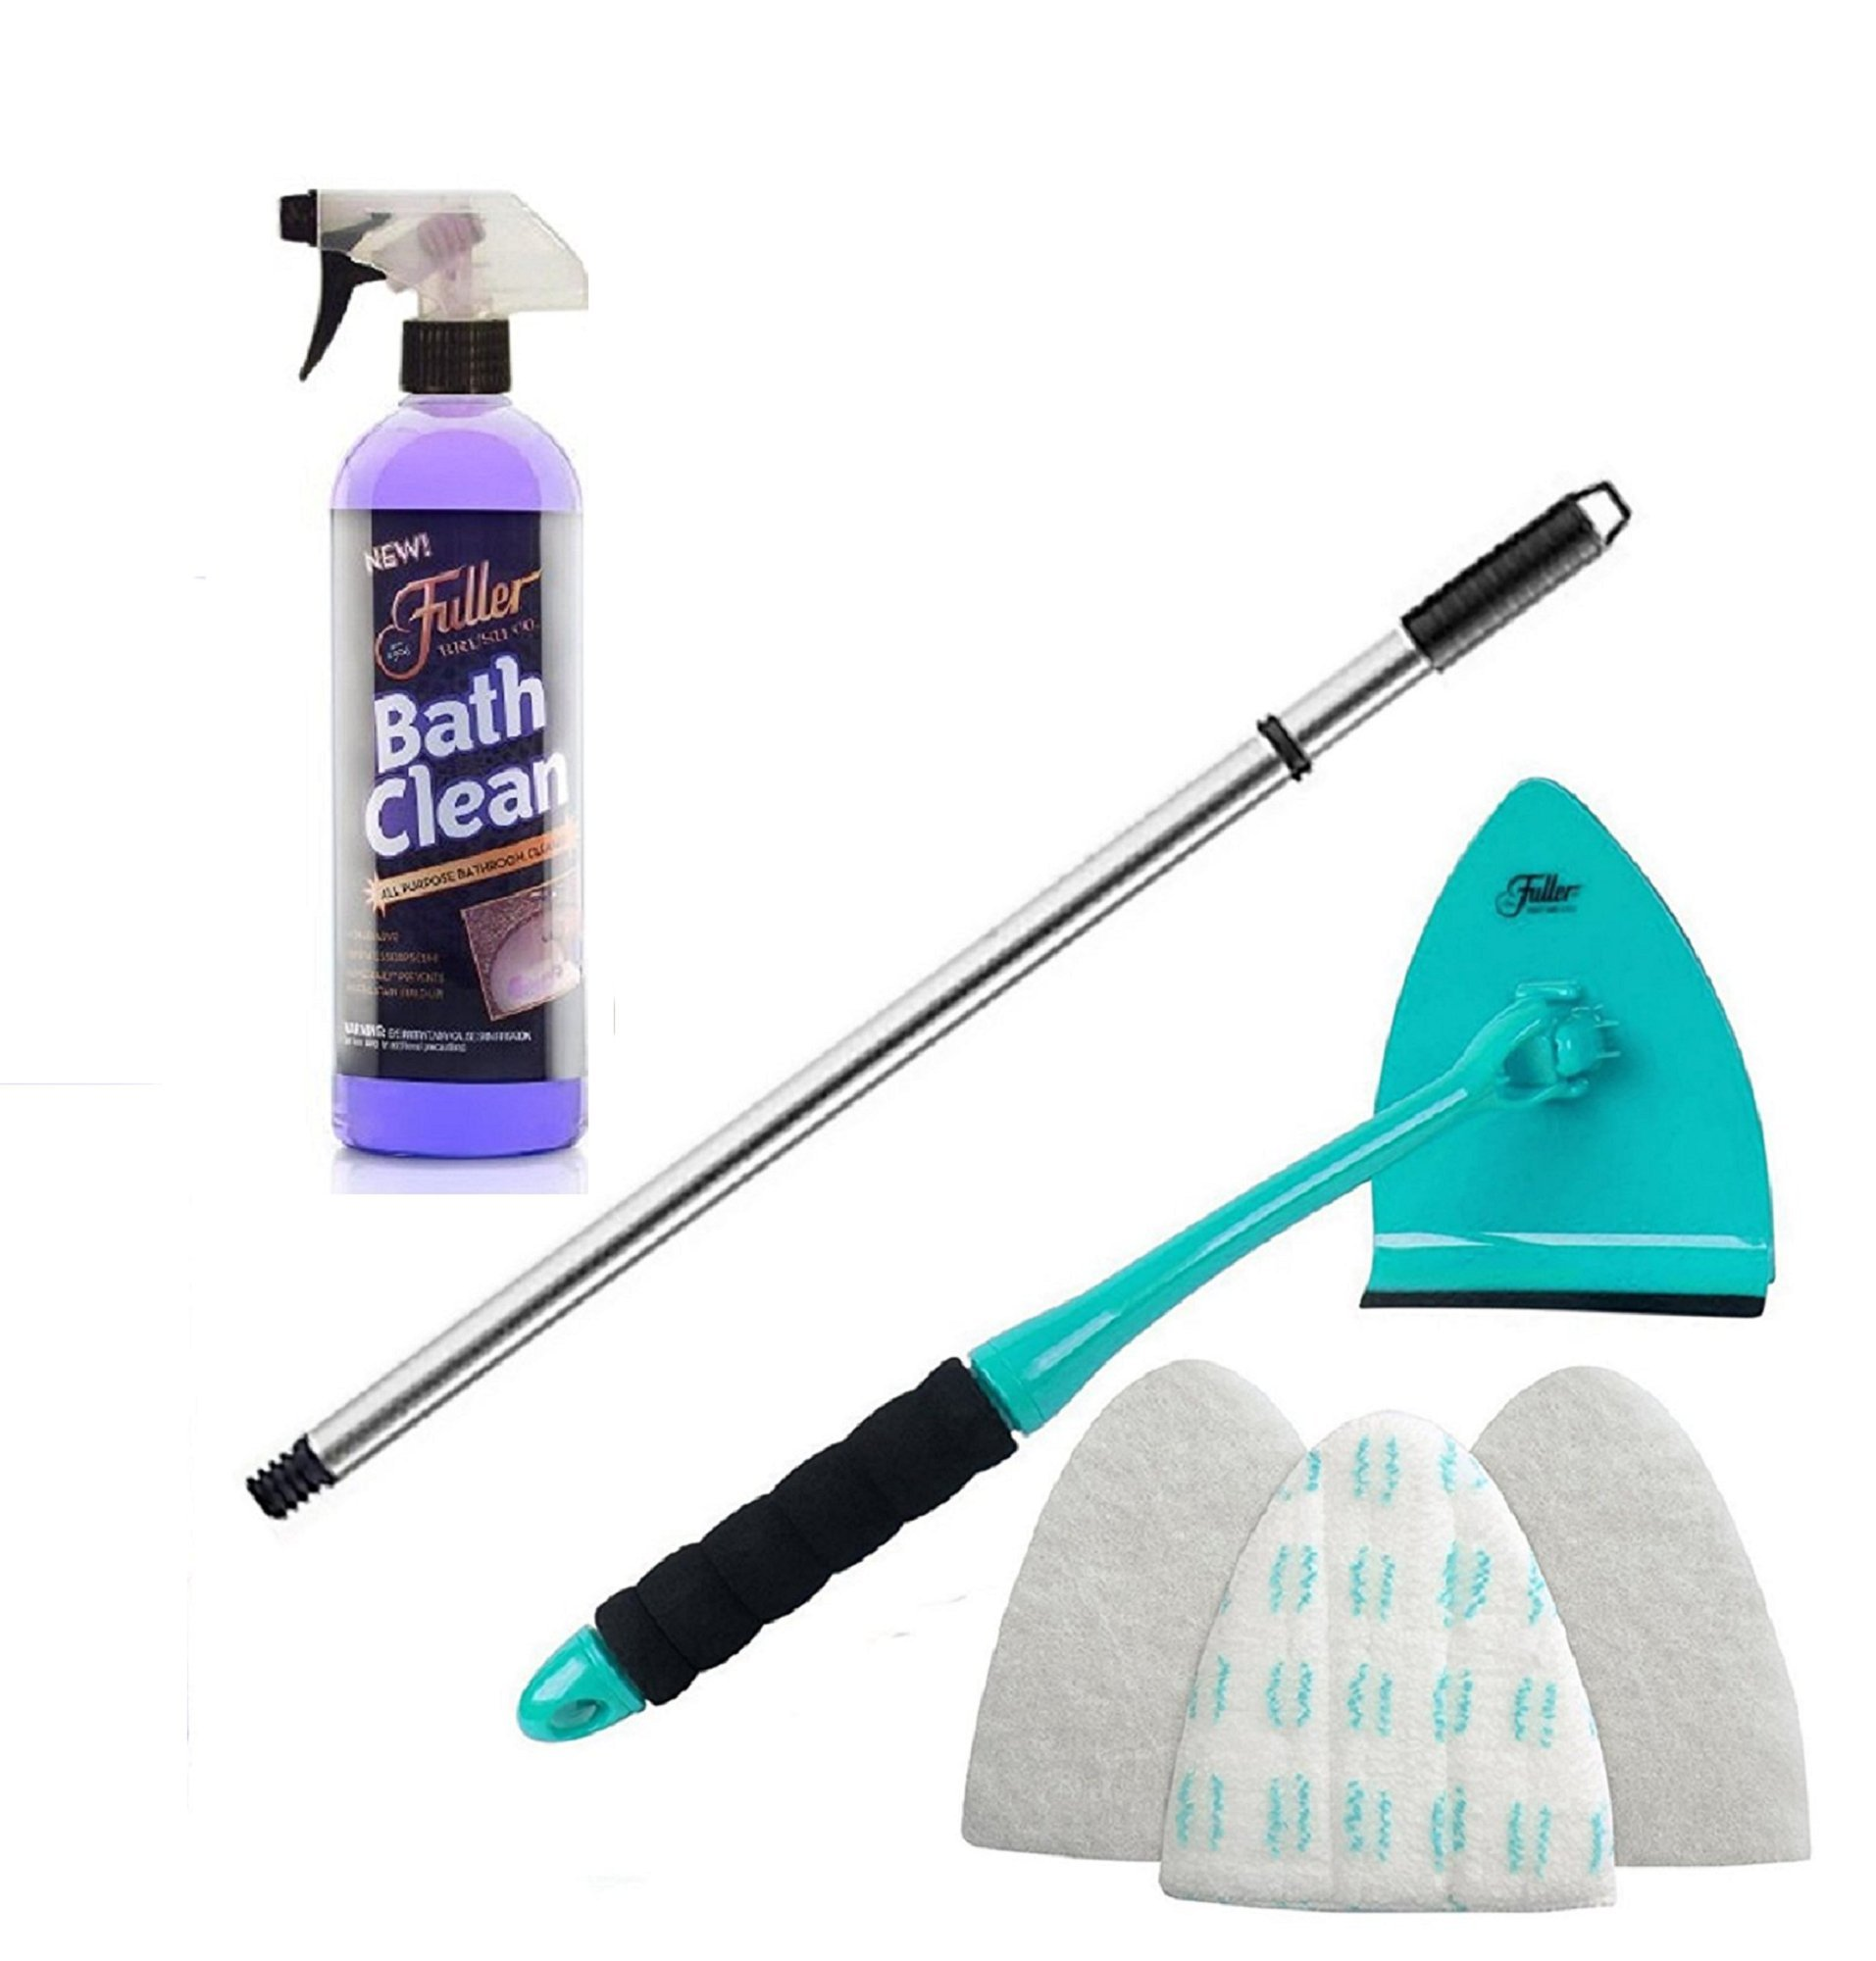 Fuller Brush BathClean Tile and Bathroom Scrubbing Kit with Big EZ Extendable Reach Bath Scrubber & Squeegee by Fuller Brush